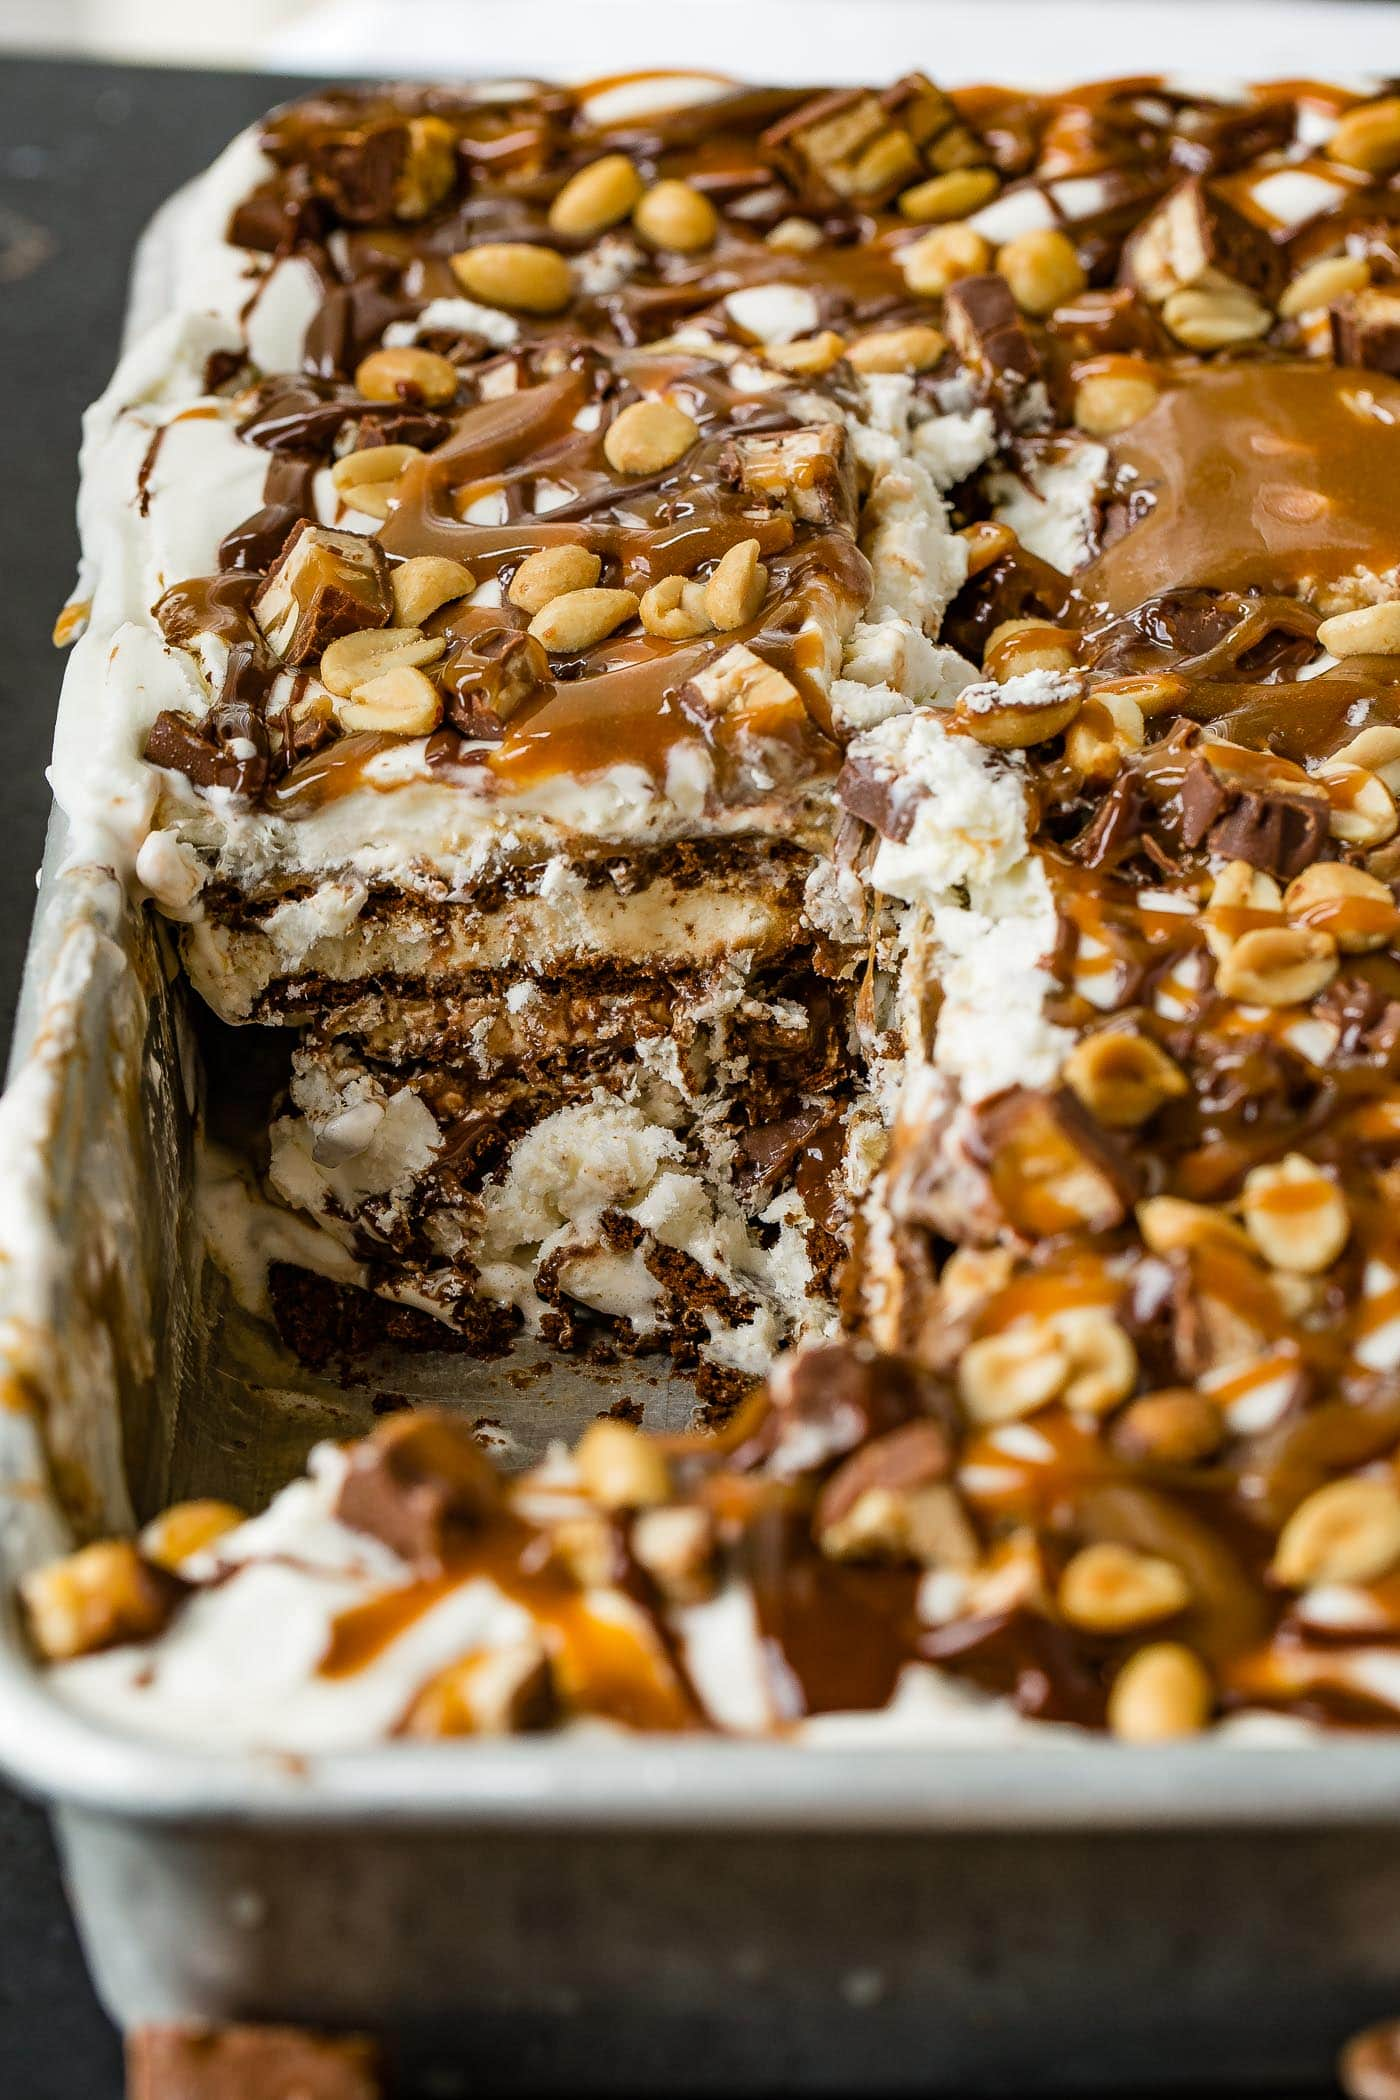 A pan of snickers ice cream cake with a piece removed. There are layers of ice cream, cake, fudge, caramel, whipped cream and candy bars. The top is drizzled with hot fudge, caramel topping and salted peanuts.